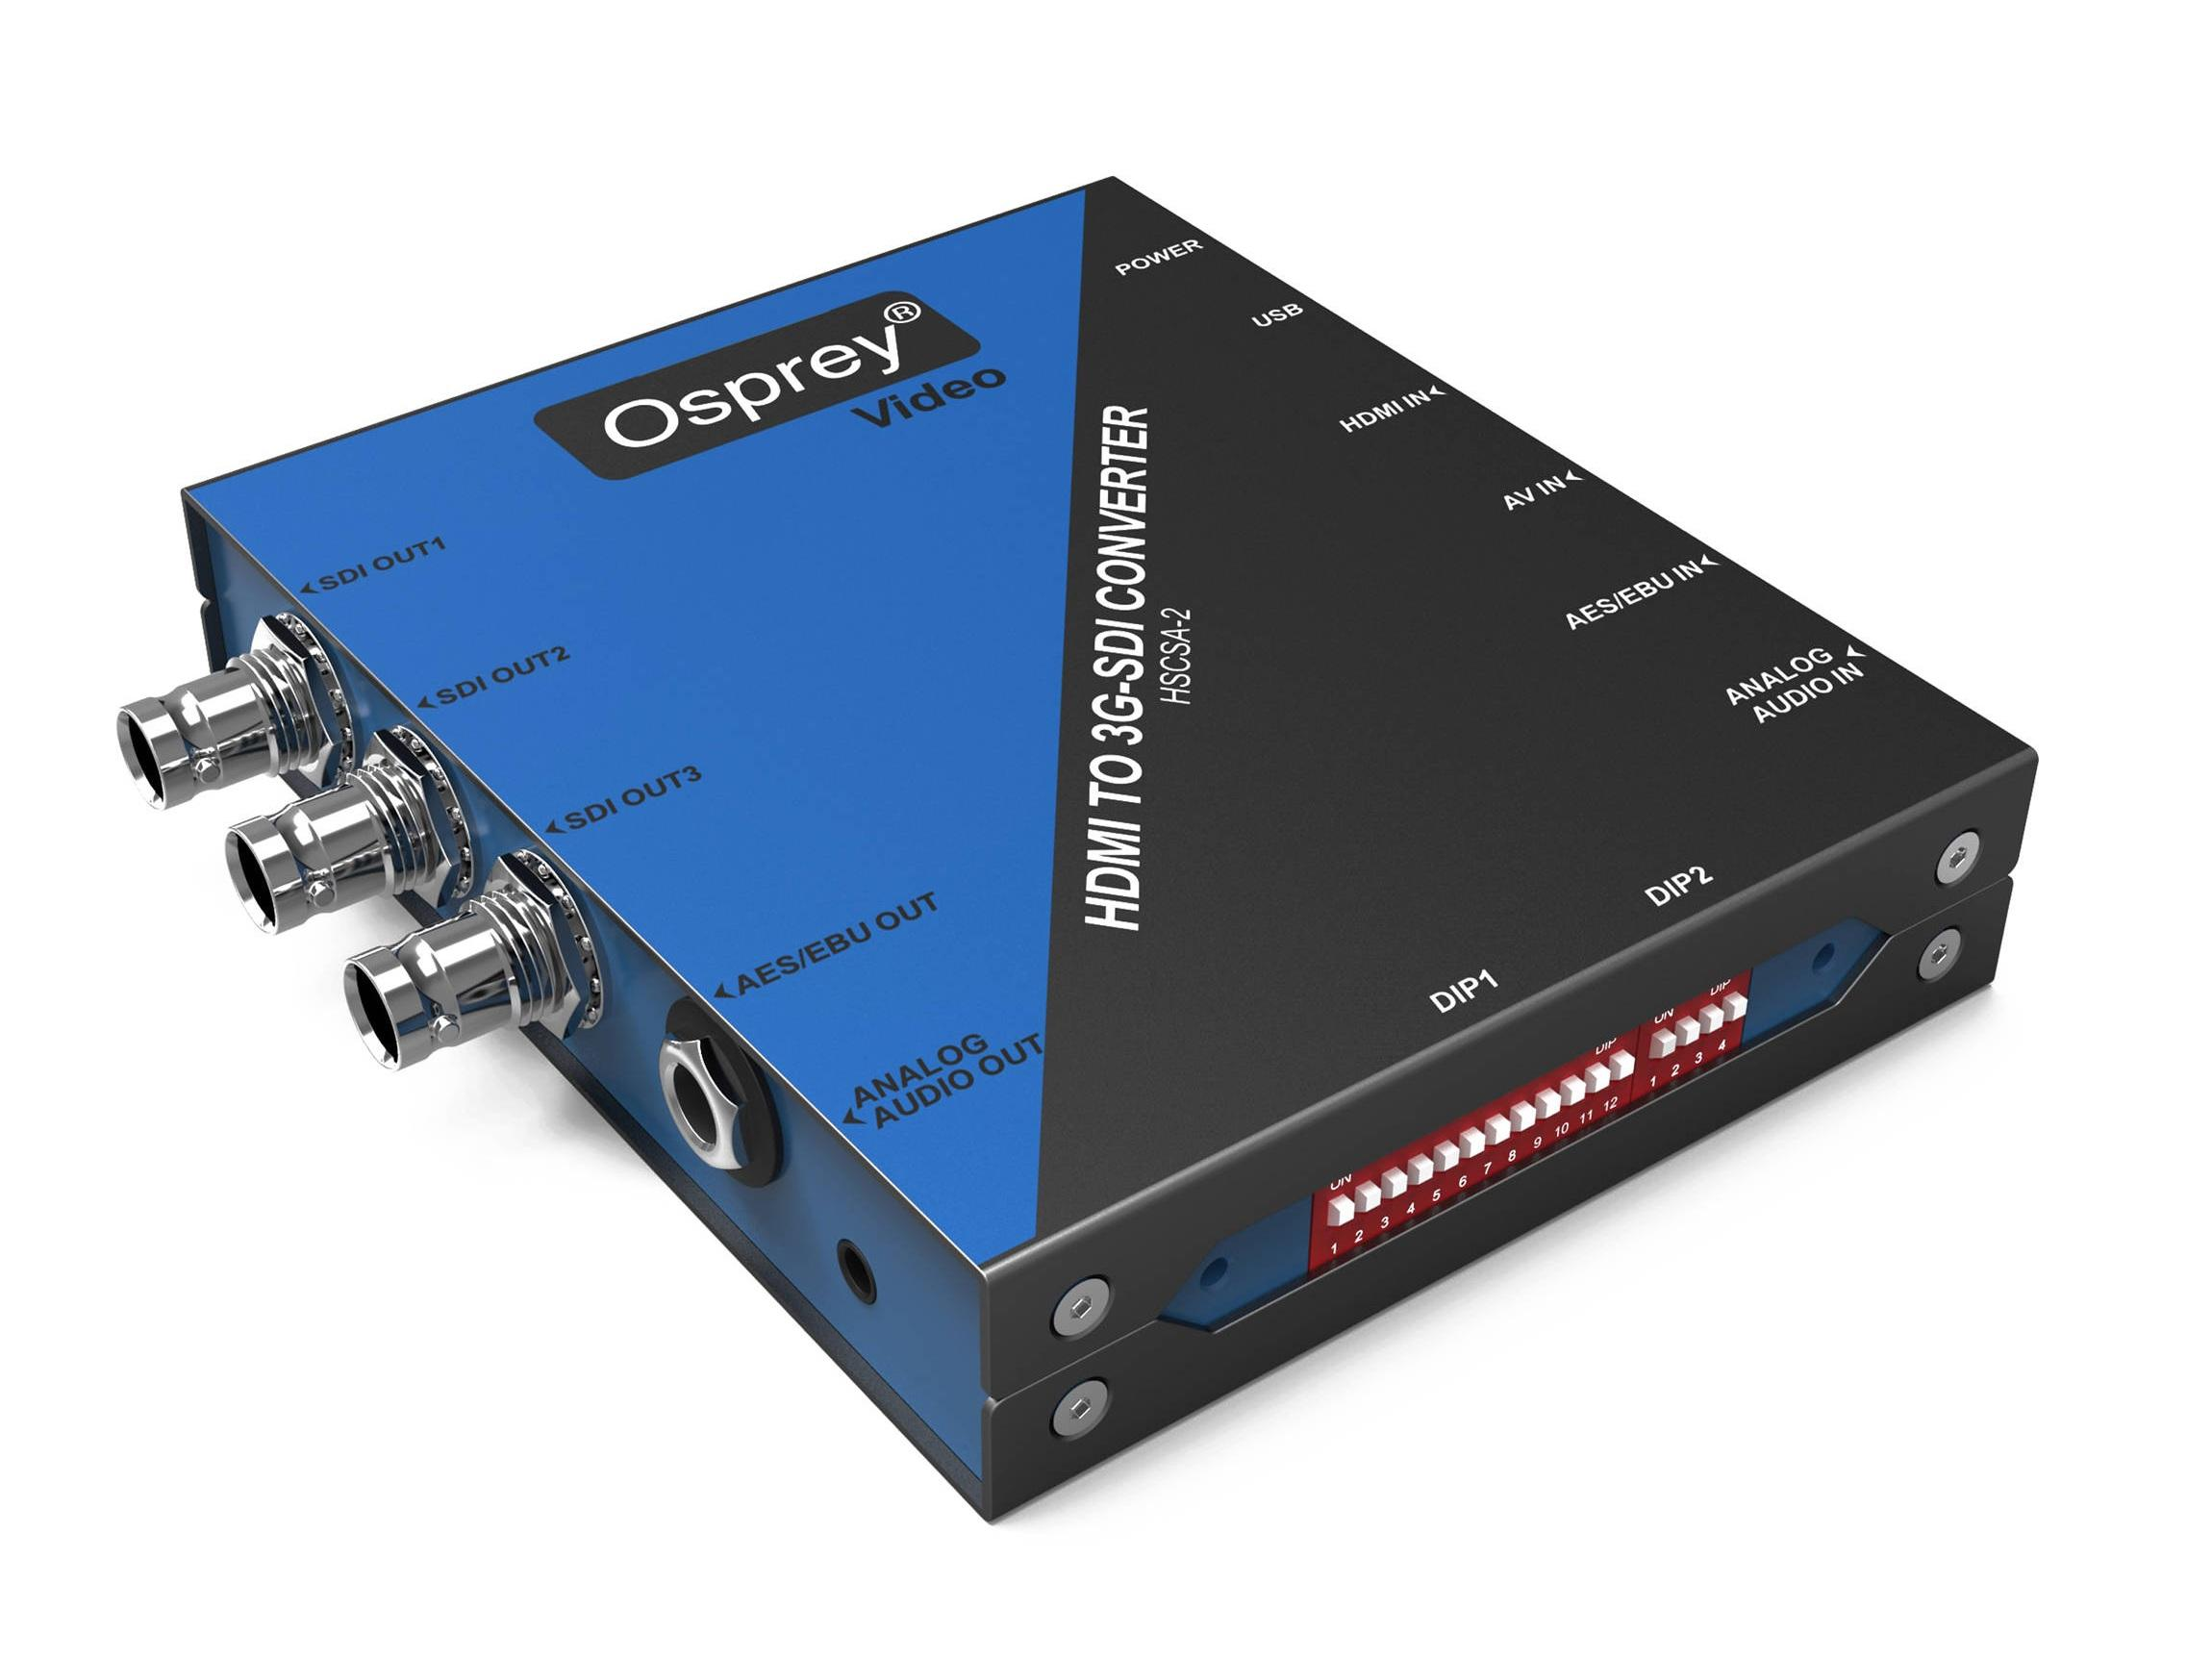 Osprey 97-42111 Scaling HDMI to SDI HSCSA-2 Converter Late